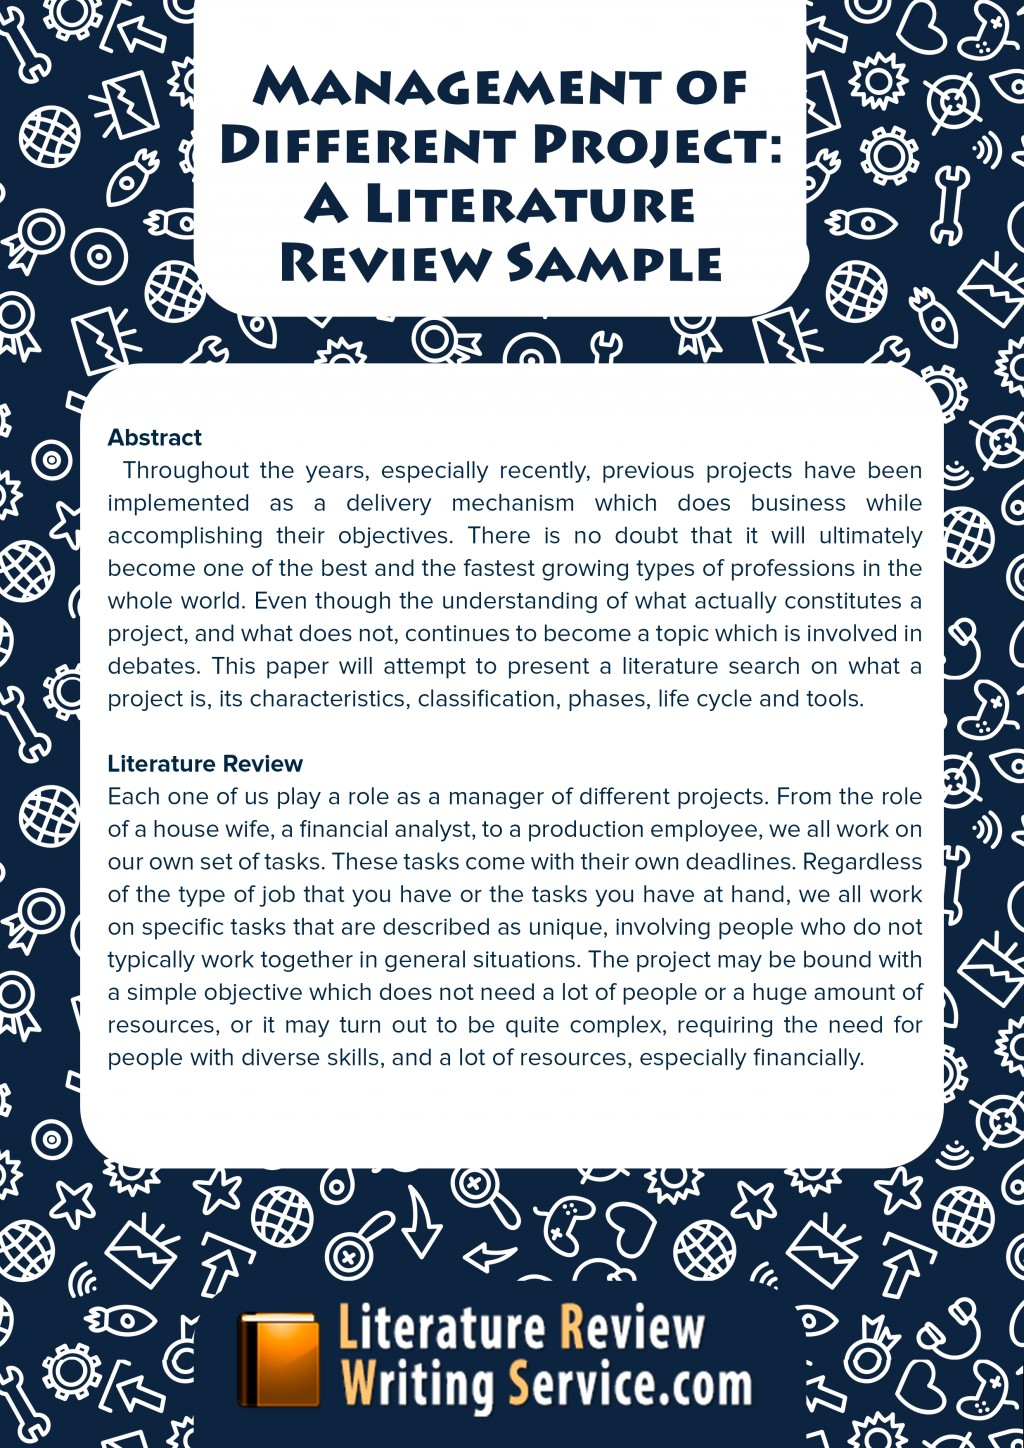 012 Business Literature Review Example Sample Research Paper Easy Topics Surprising About Large